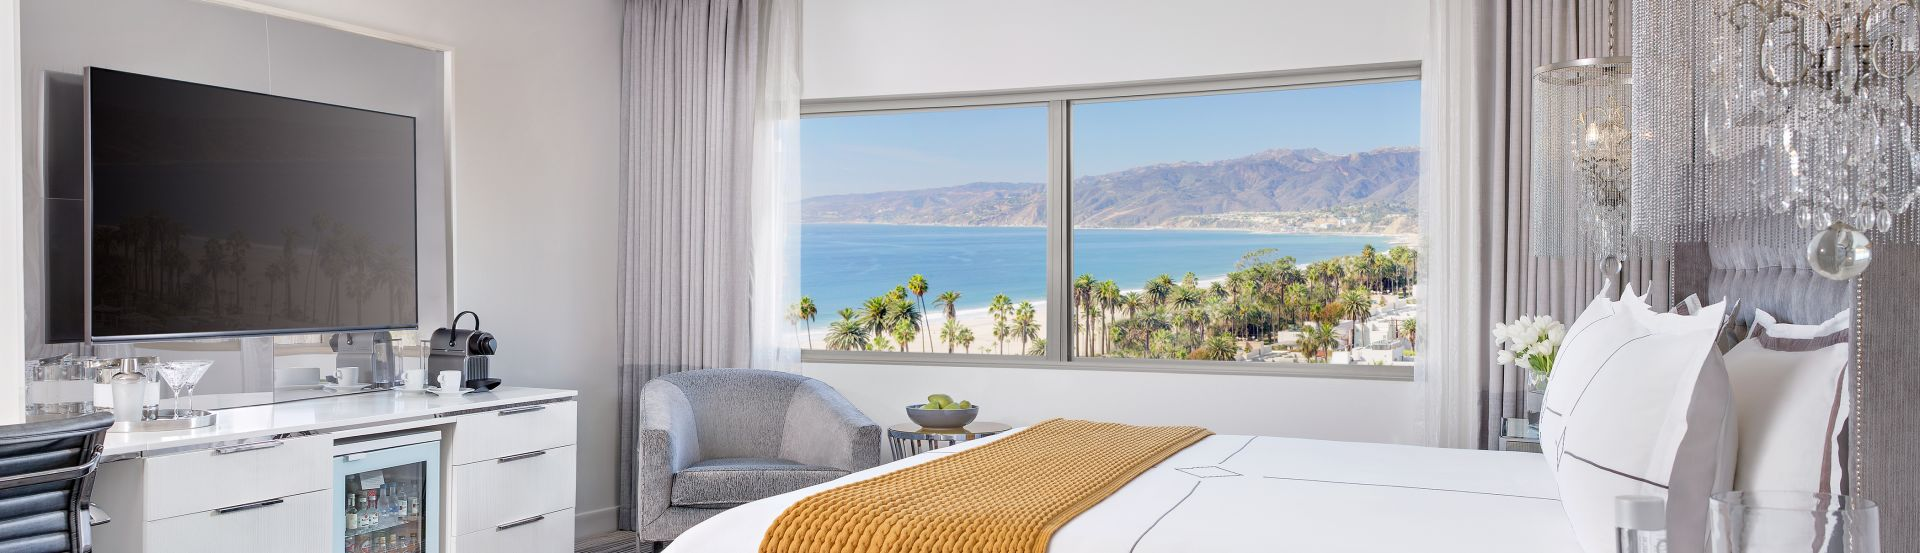 Rooms & Suites LUXURY ACCOMMODATIONS IN SANTA MONICA